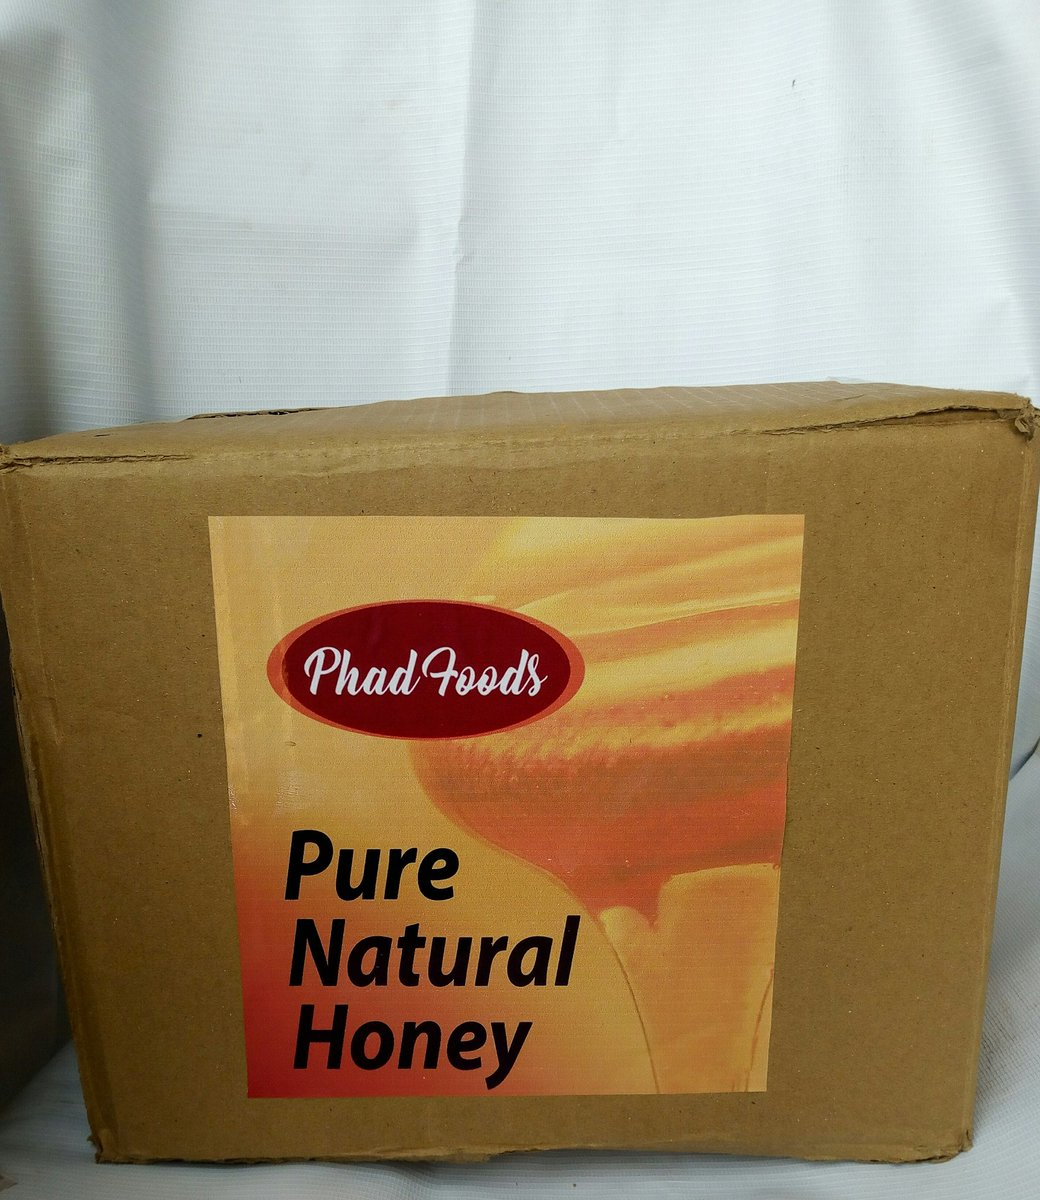 Twittersphere Allow me to reintroduce my Business PHAD Foods @PhadFoods  I sell Original Honey, well packaged honey (100% Purity guaranteed)   We run Delivery service too within Abuja,Suleja and Minna #PHADfoods #AbujaTwitterCommunity  Kindly RT my Customers might be on your TL <br>http://pic.twitter.com/Y6vSMFk0a7